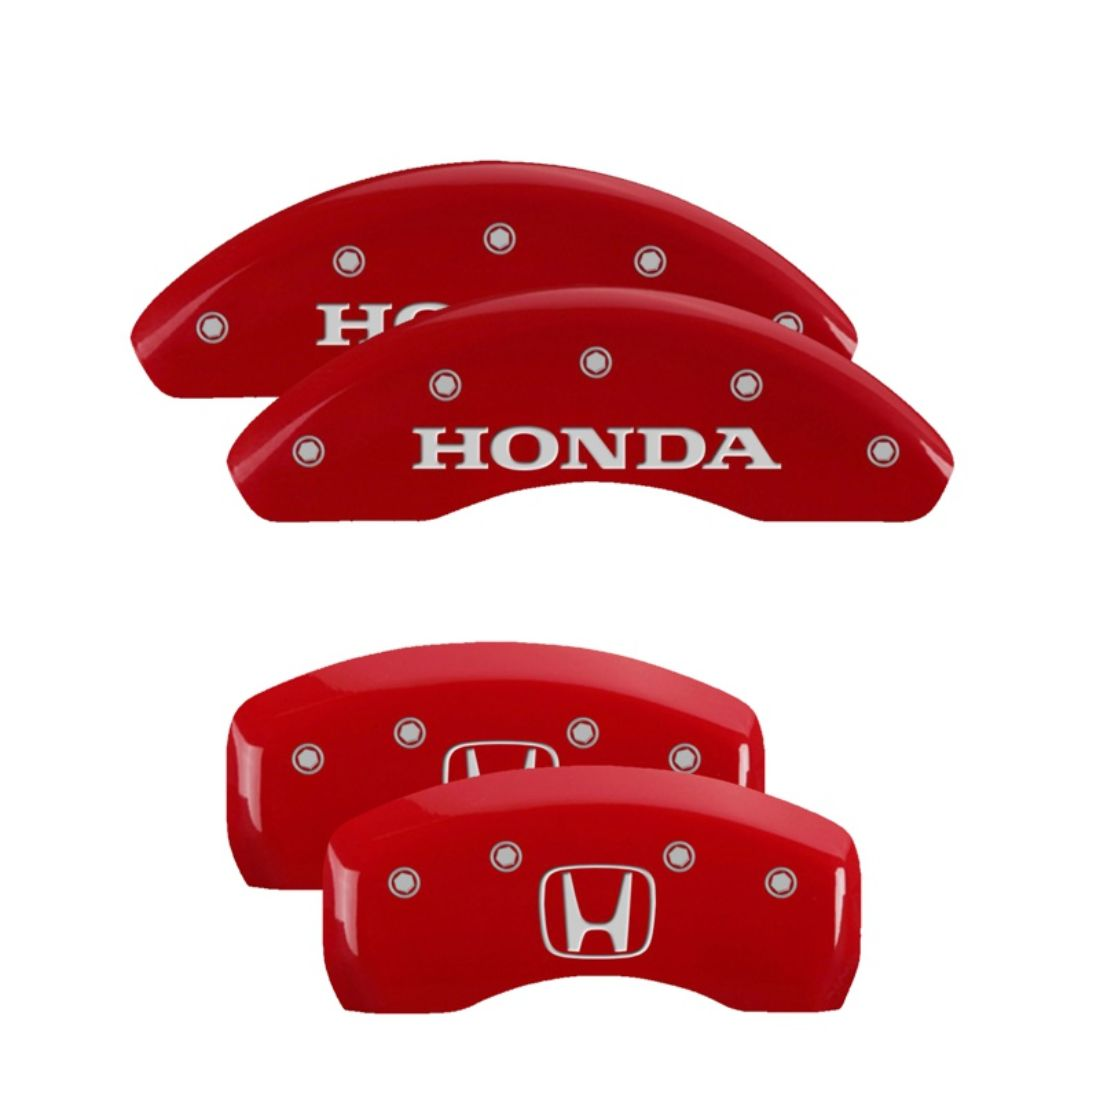 Set of 4 MGP Caliper Covers 20207SHOHRD Red Powder Coat Finish Honda//H Logo Engraved Caliper Cover with Silver Characters